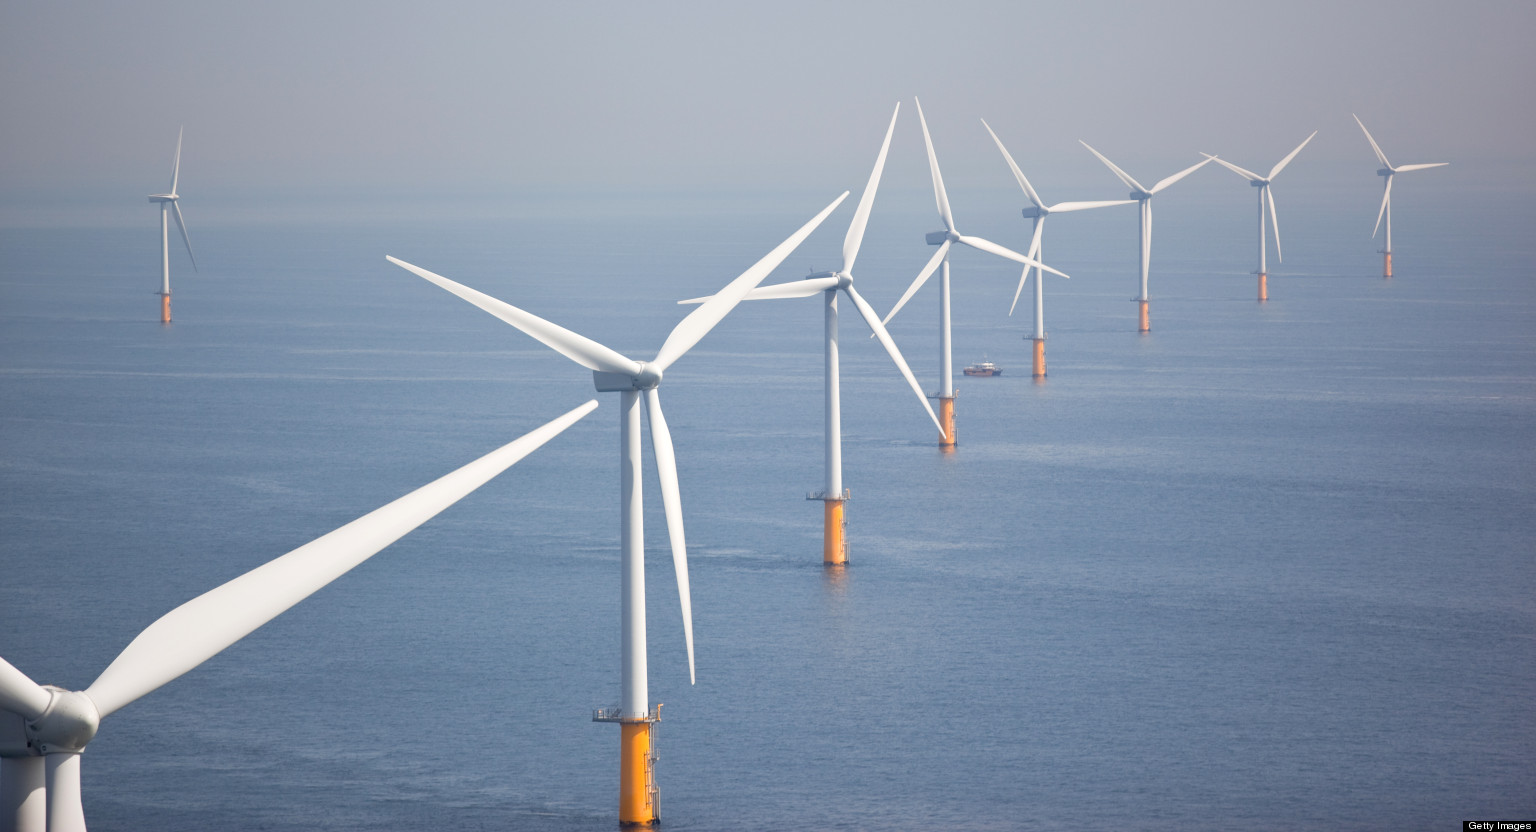 Siemens to supply wind turbines for world's largest floating wind farm